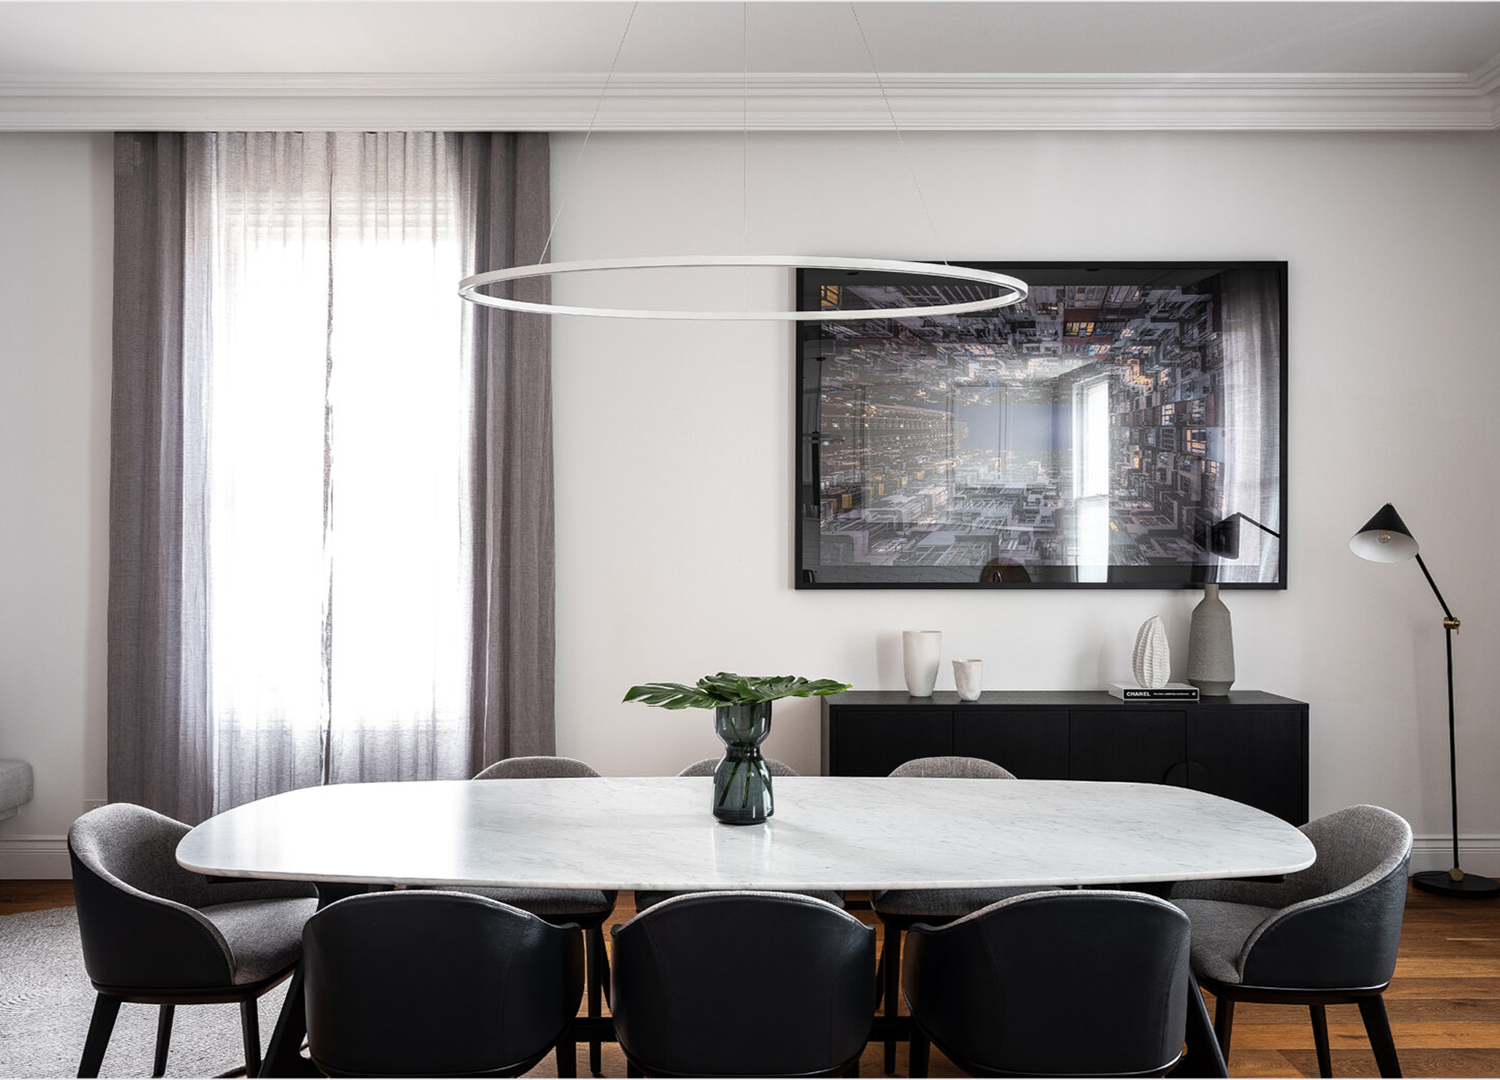 est living Innovate architects surry hills home 02